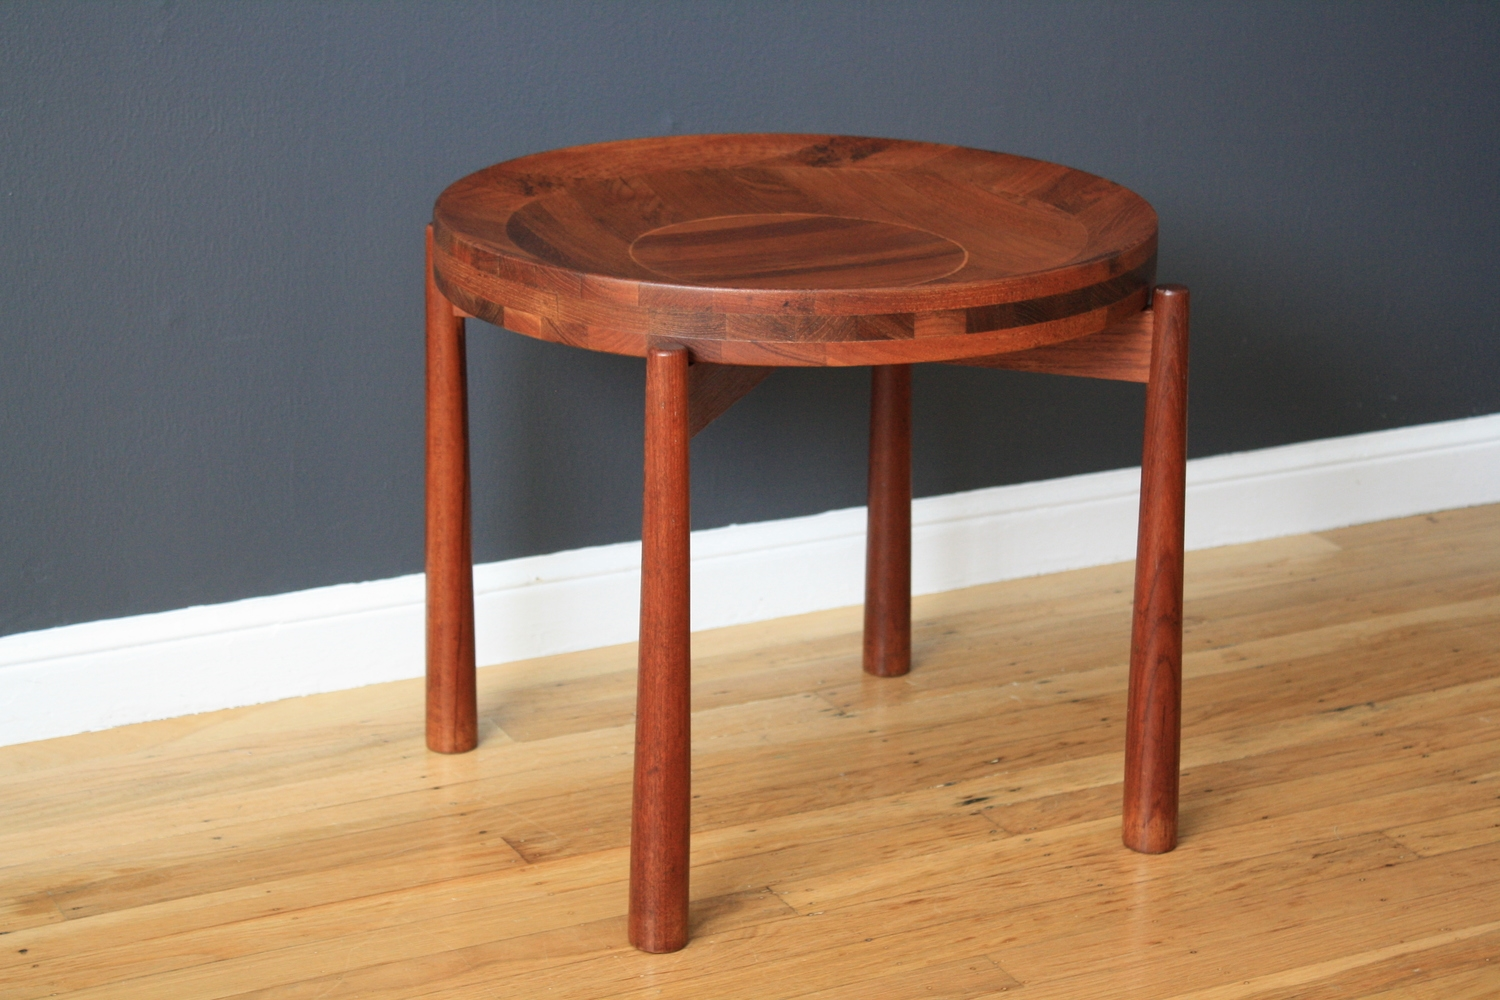 Vintage Mid-Century Jens Quistgaard Side Table